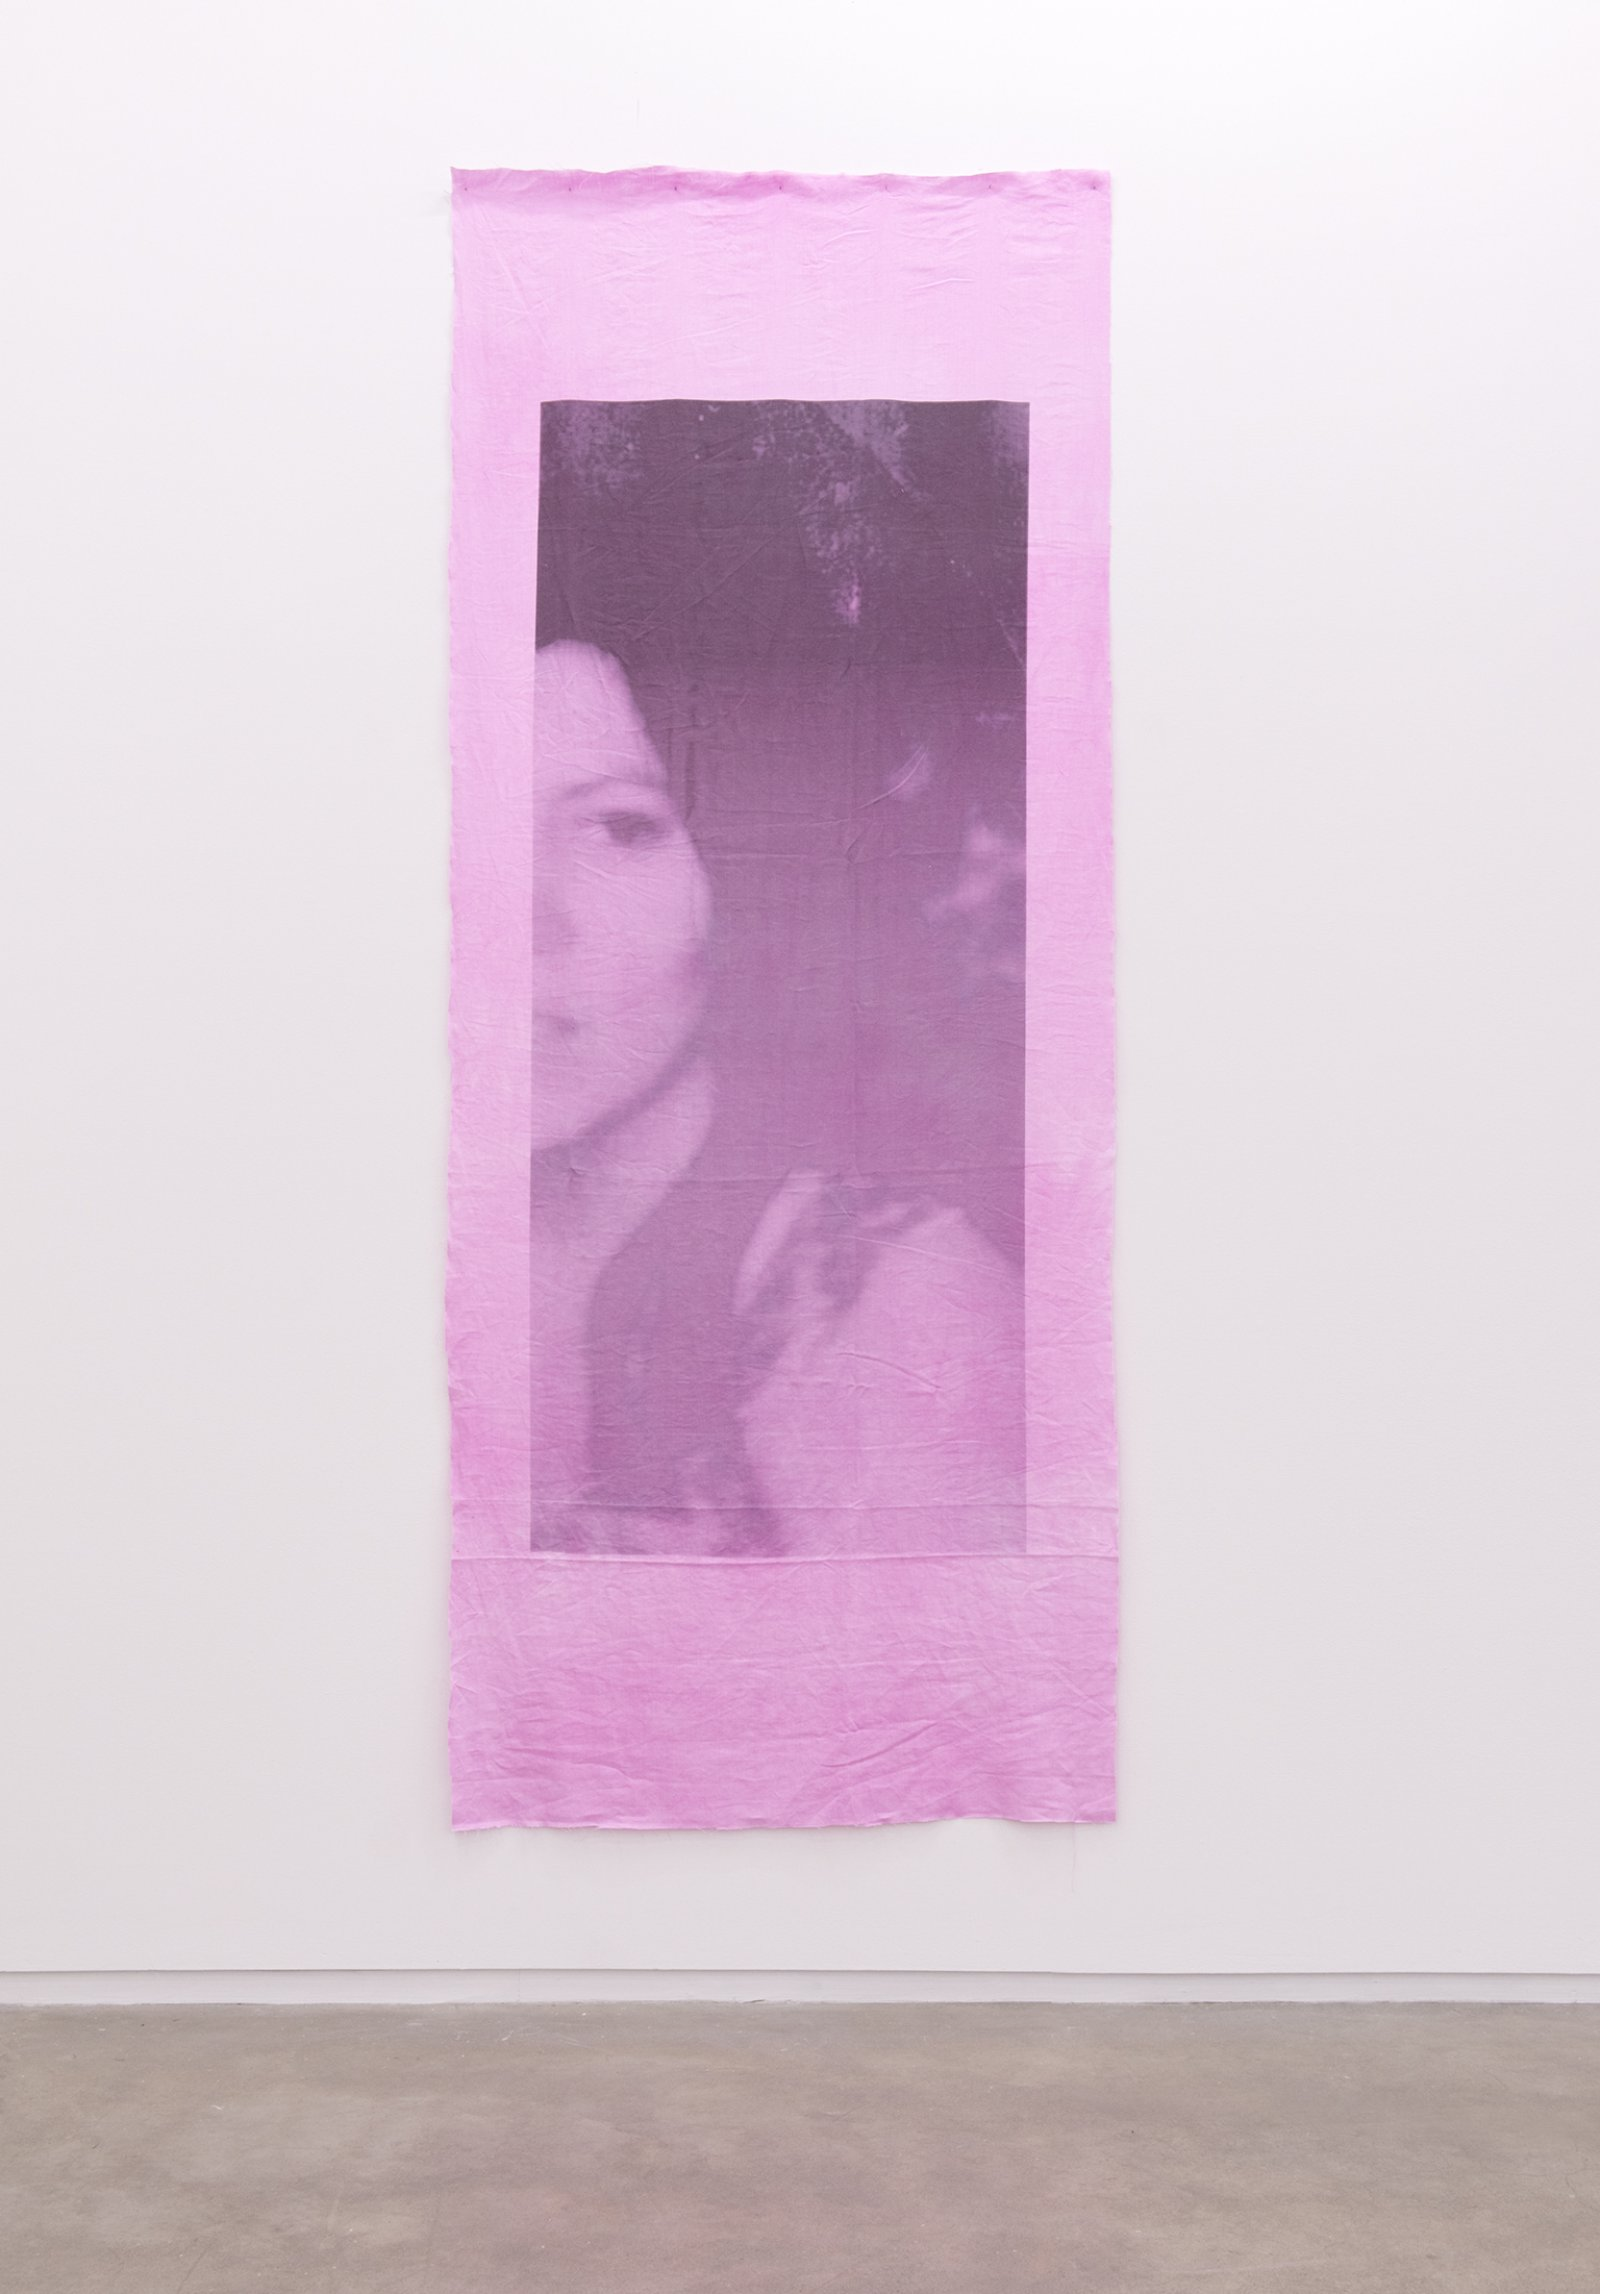 Duane Linklater, Family photograph (detail), 2014, 2 inkjet prints on hand dyed linen, nails, 110 x 44 in. (278 x 110 cm), left: 101 x 43 inches (255 x 109 cm), right: 110 x 44 (278 x 112 cm)